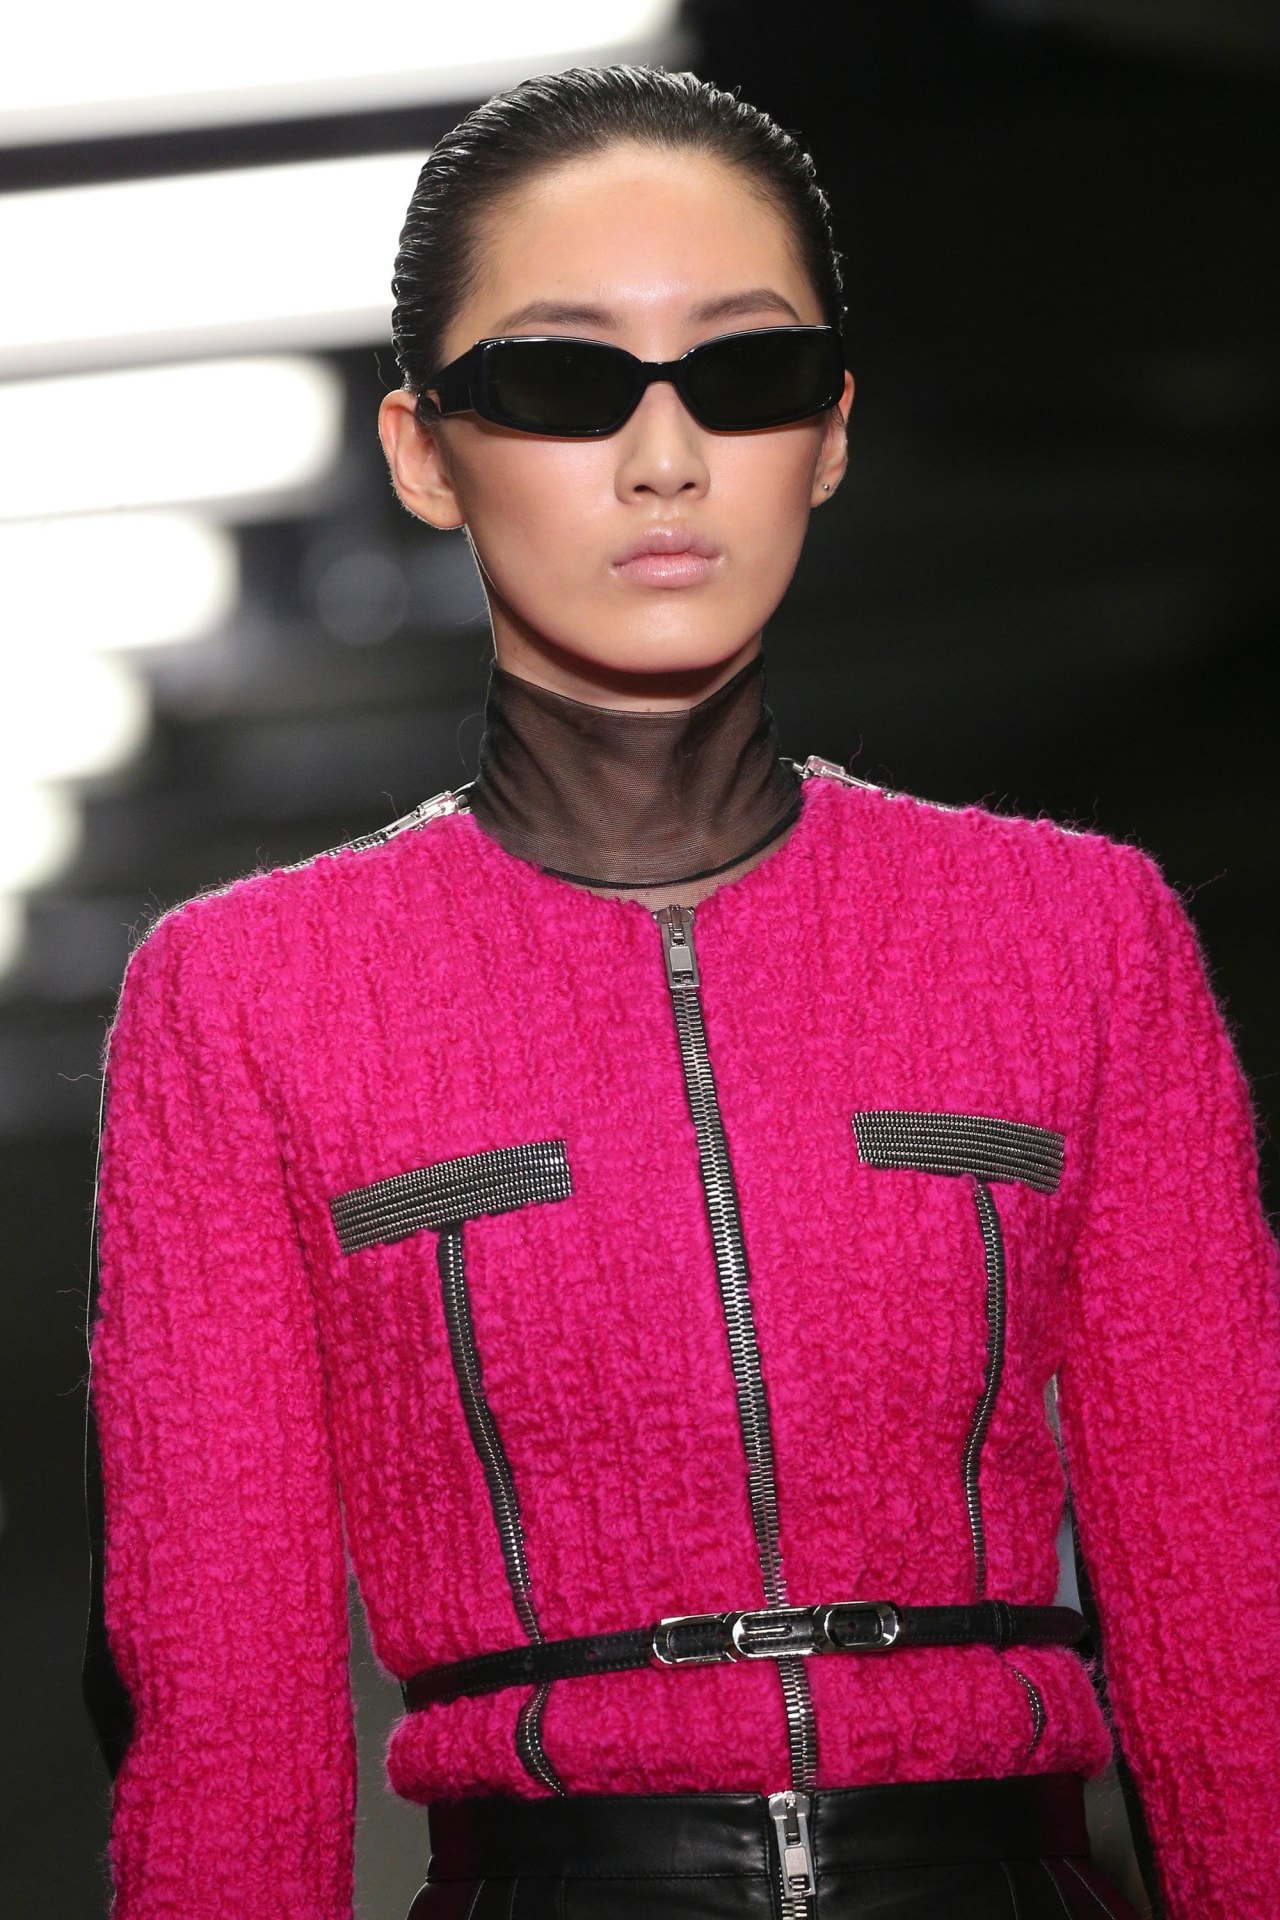 Sheer turtlenecks are officially the biggest cool-weather fashion trend